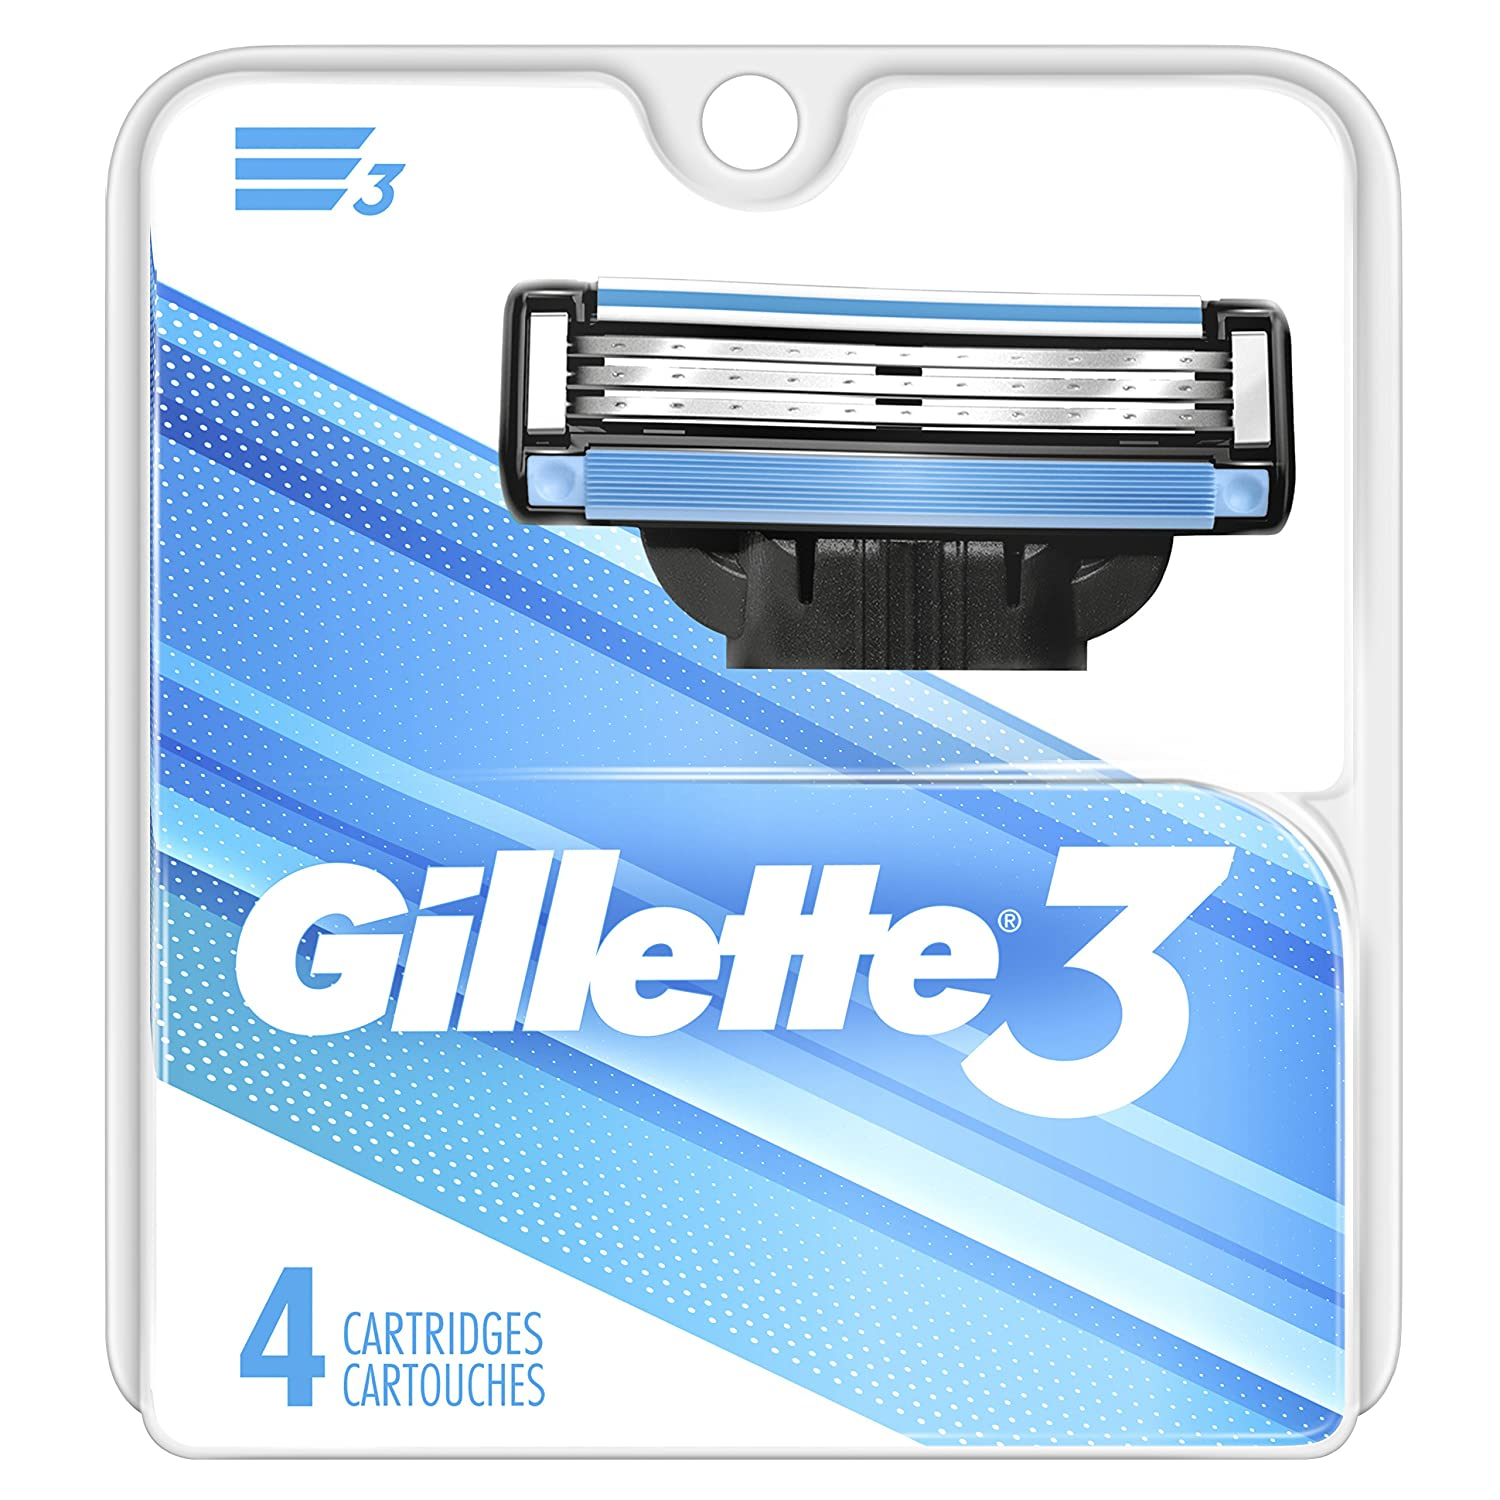 Gillette 3 Men's Razor Blade Refills, 4 Count